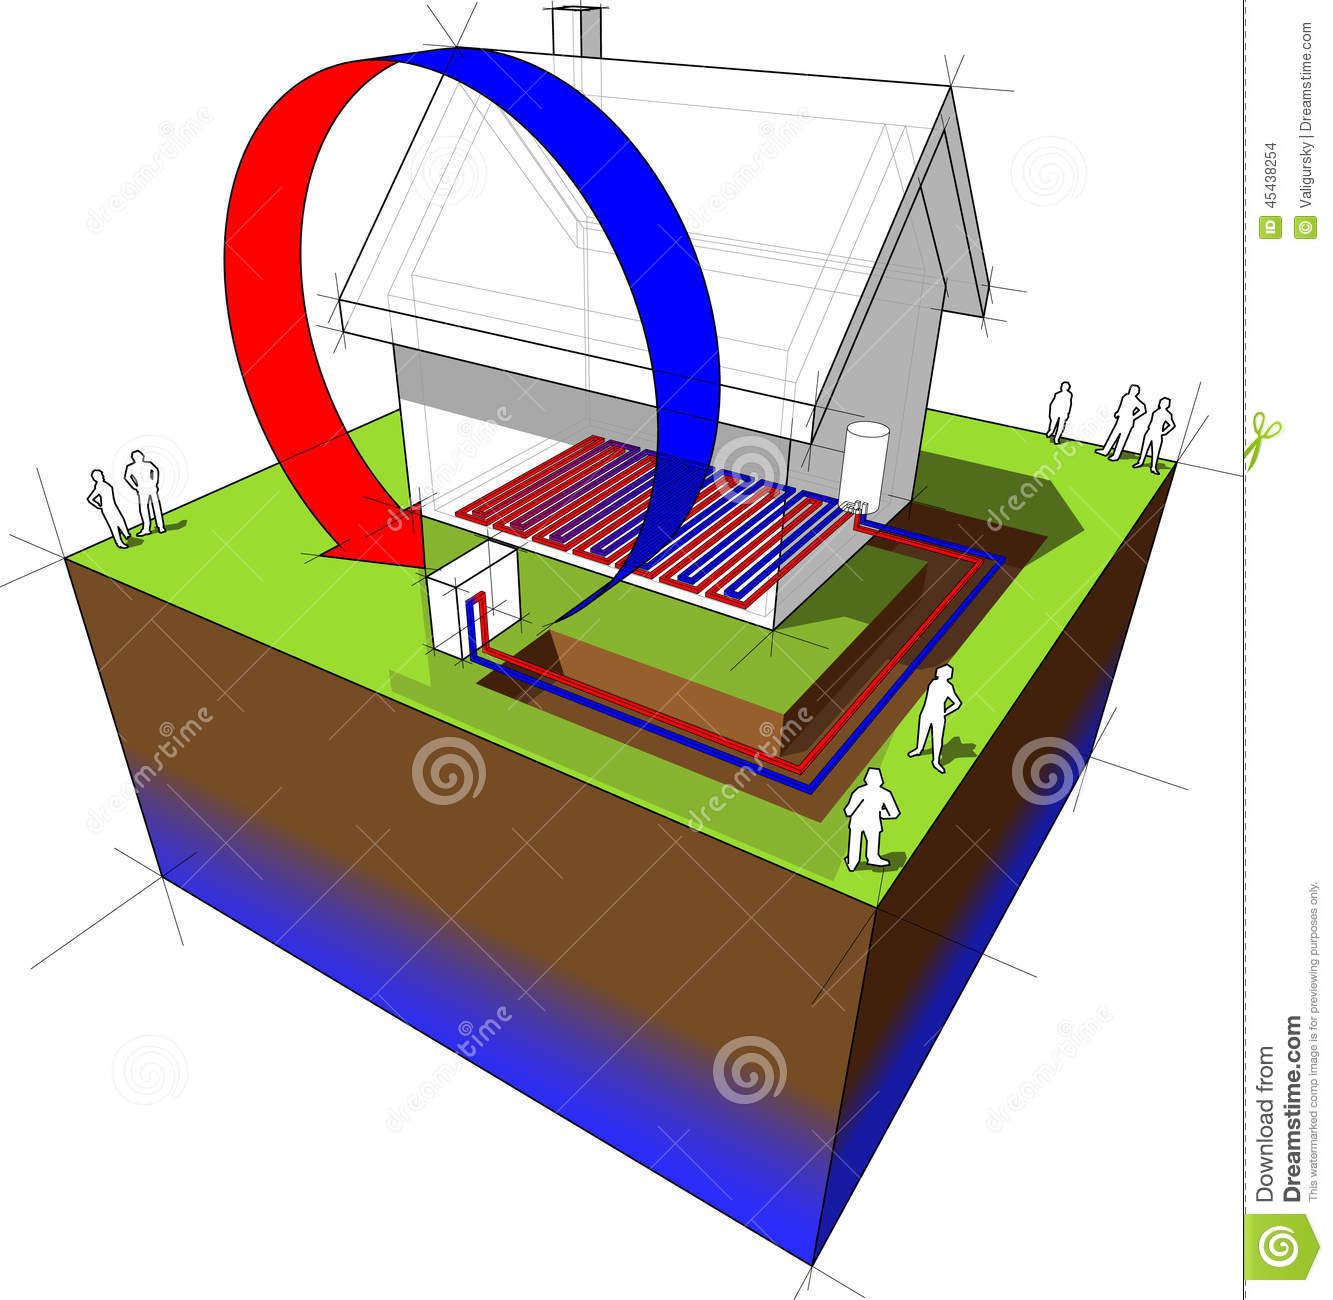 hight resolution of air source heat pump diagram air source heat pump combined with underfloor heating low temperature heating system another house diagram from the